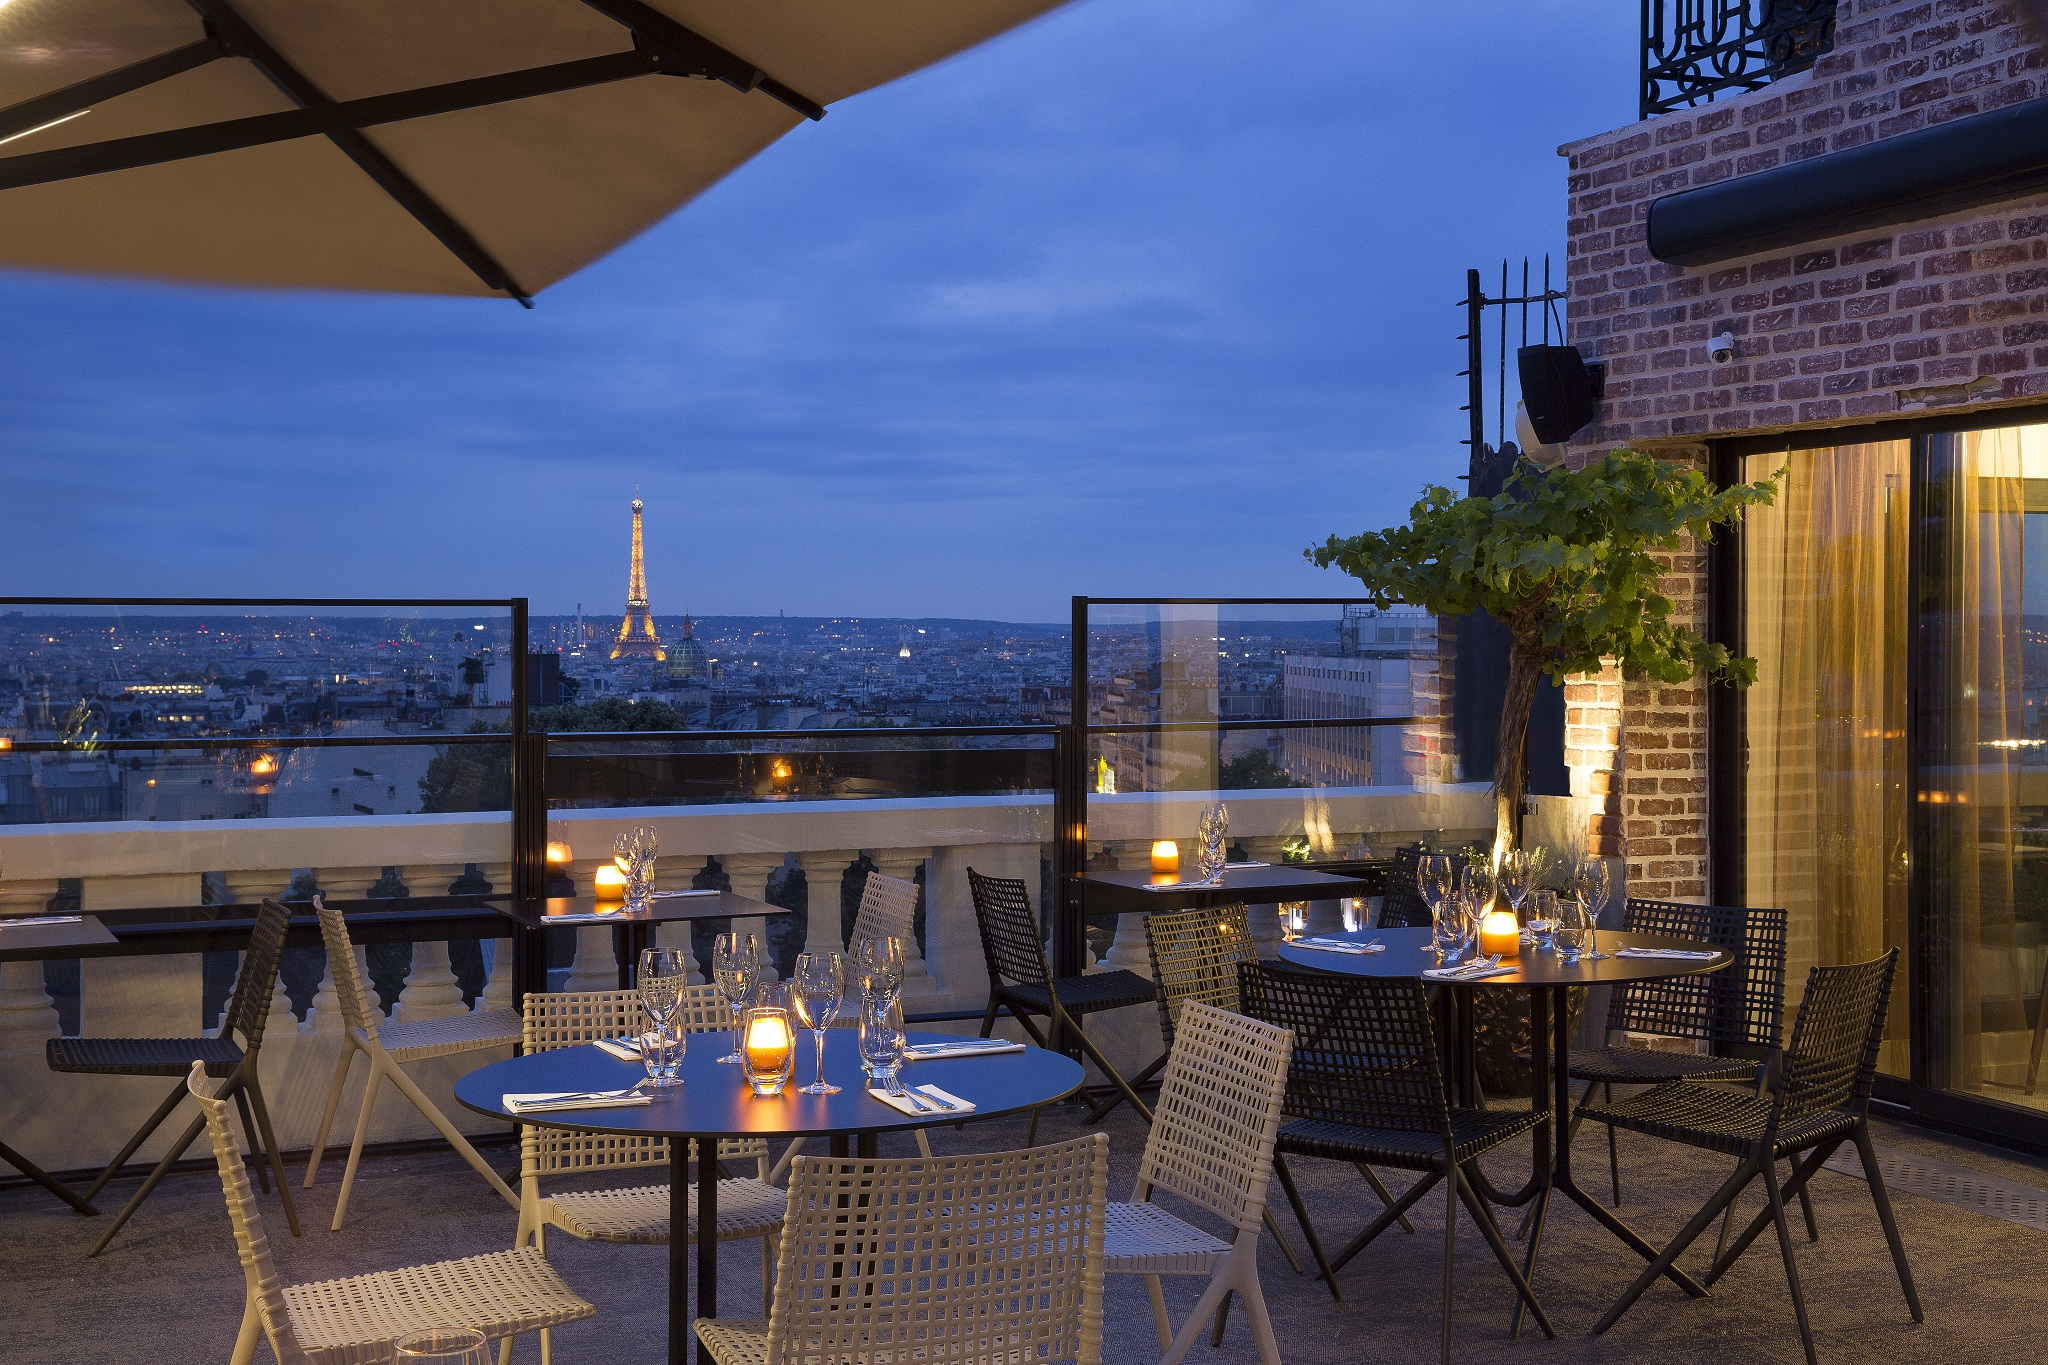 The Essential Romantic Guide To Paris